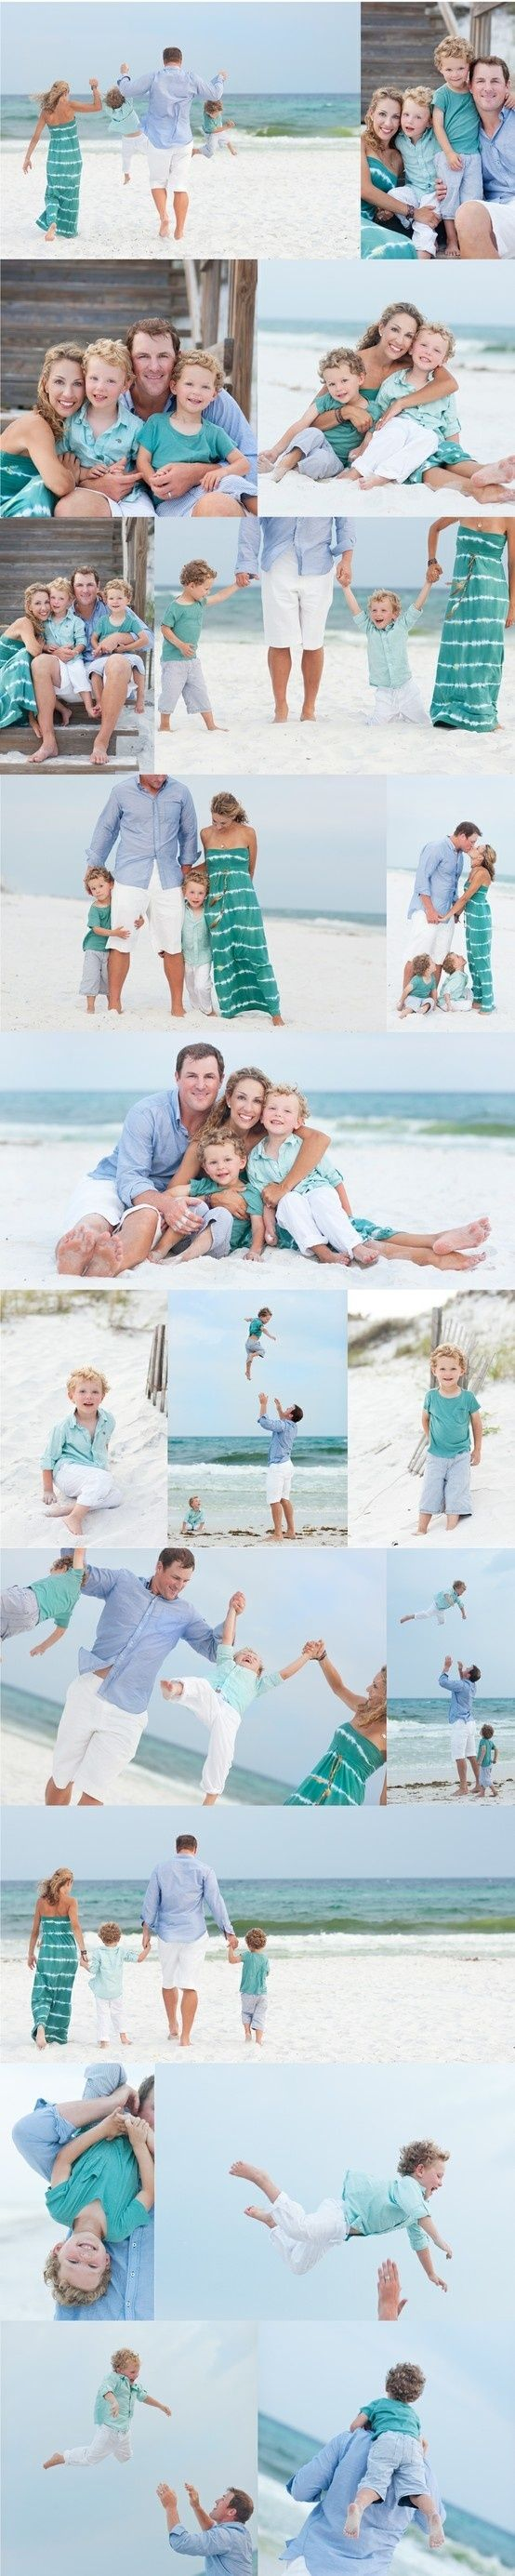 pretty family pictures on the beach!: Beach Family Photo, Photography Idea, Photo Idea